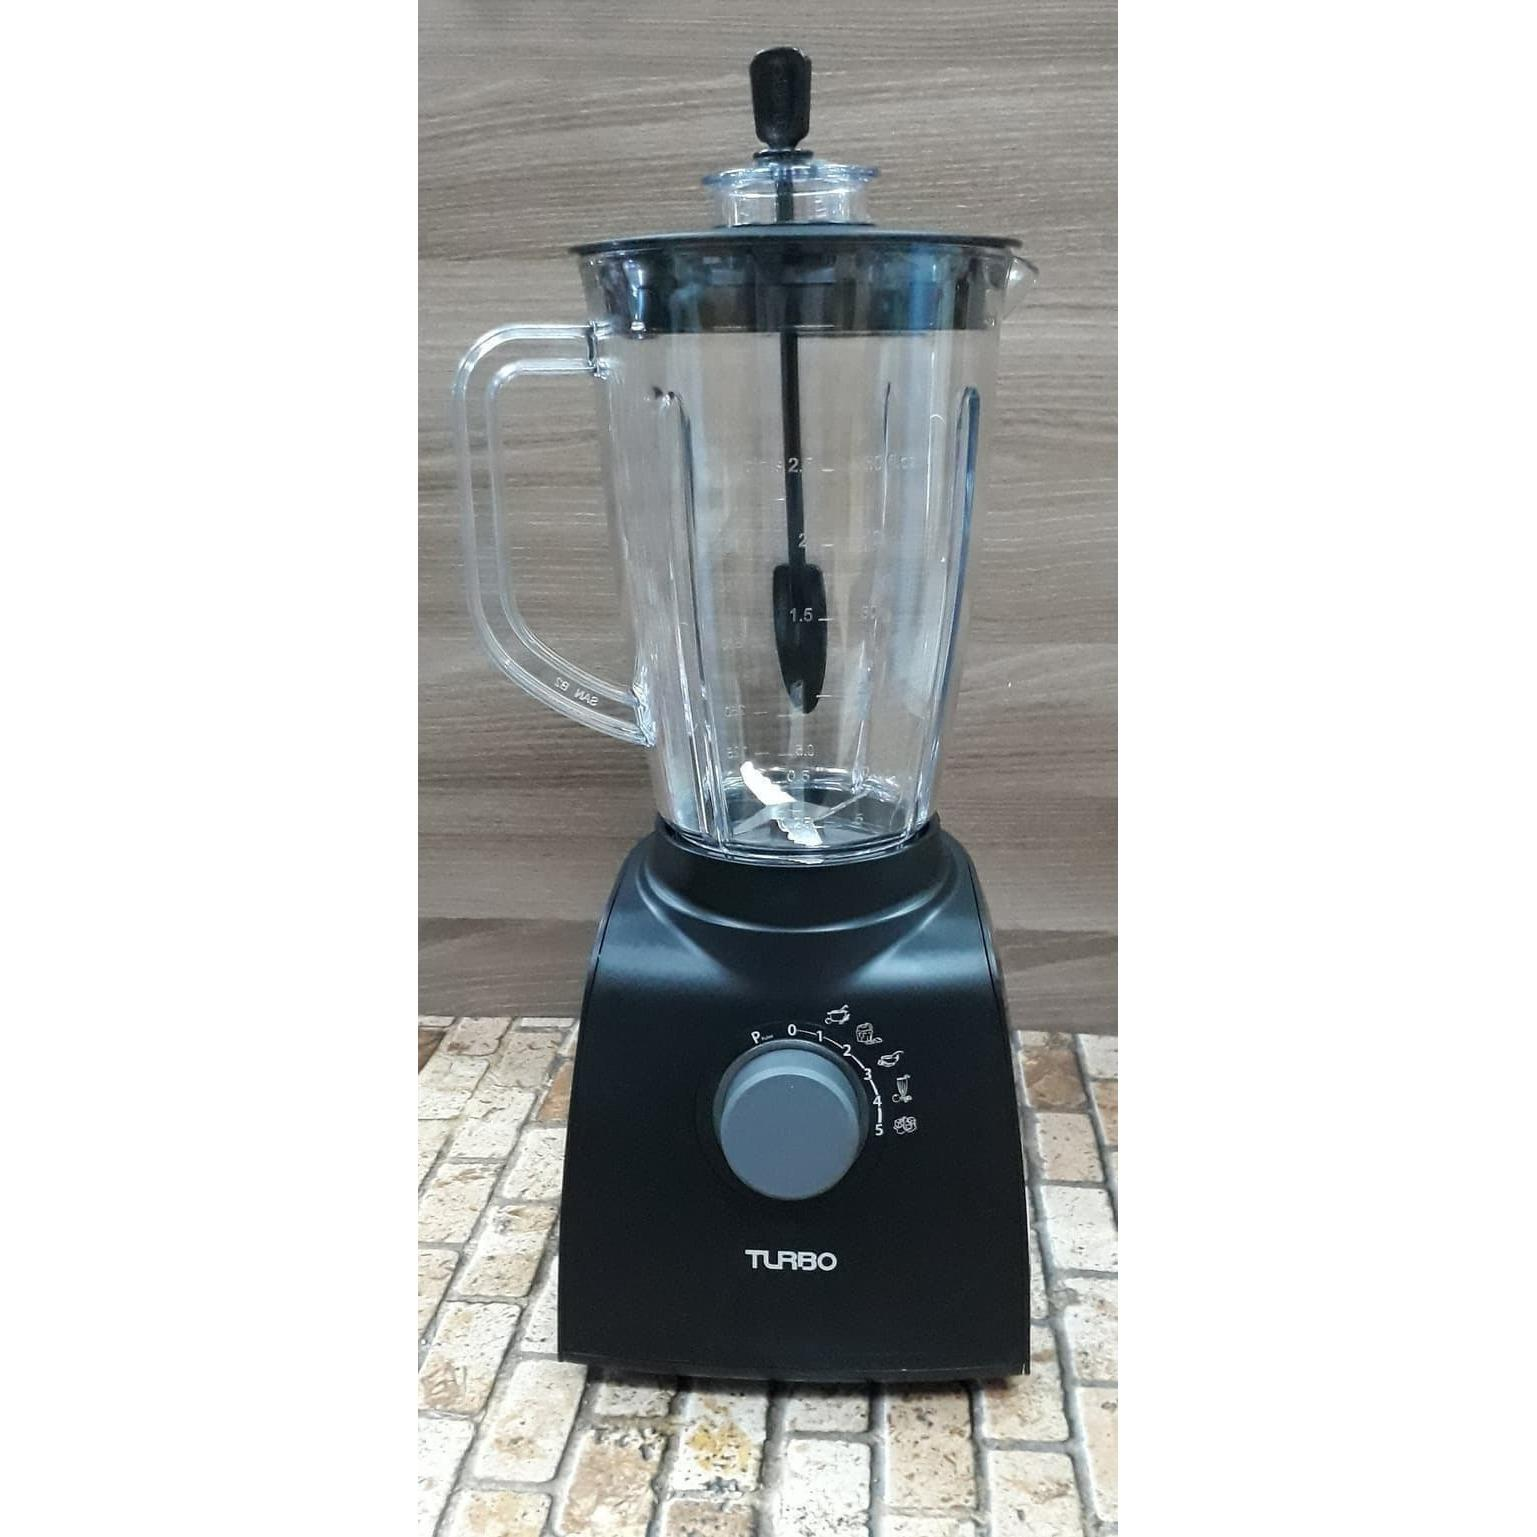 Turbo blender heavy duty EHM 8000/blender es batu/blender kuat